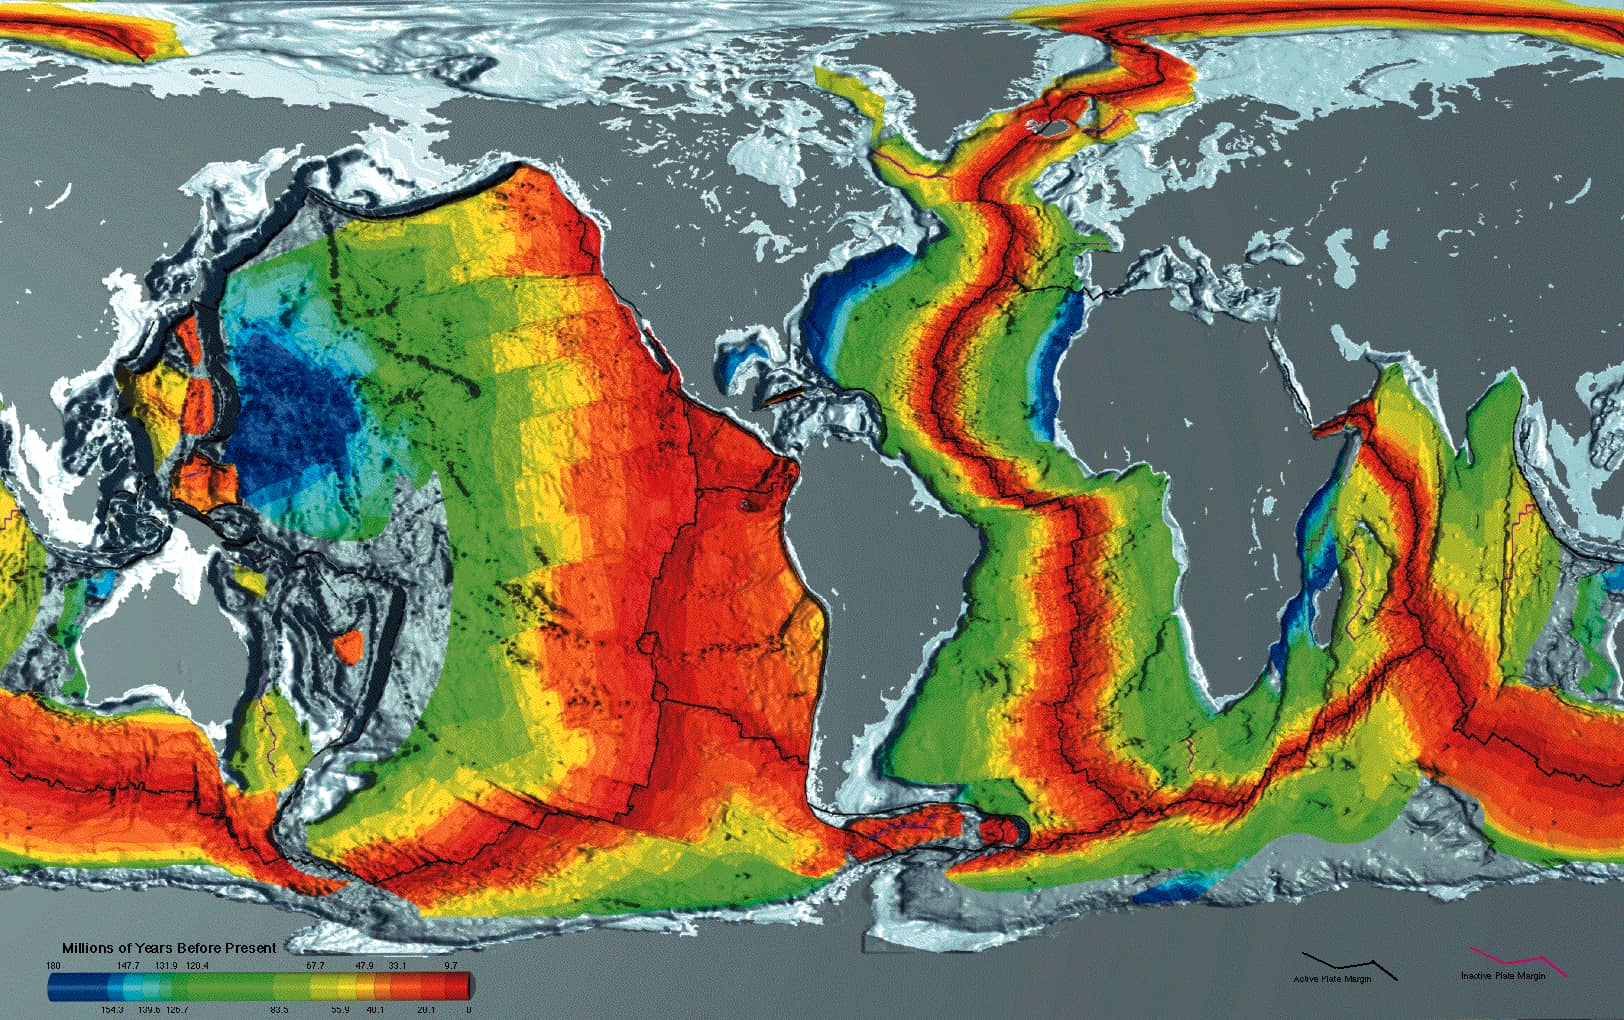 A map of the seafloor showing the age of differnt parts of the Earth's crust